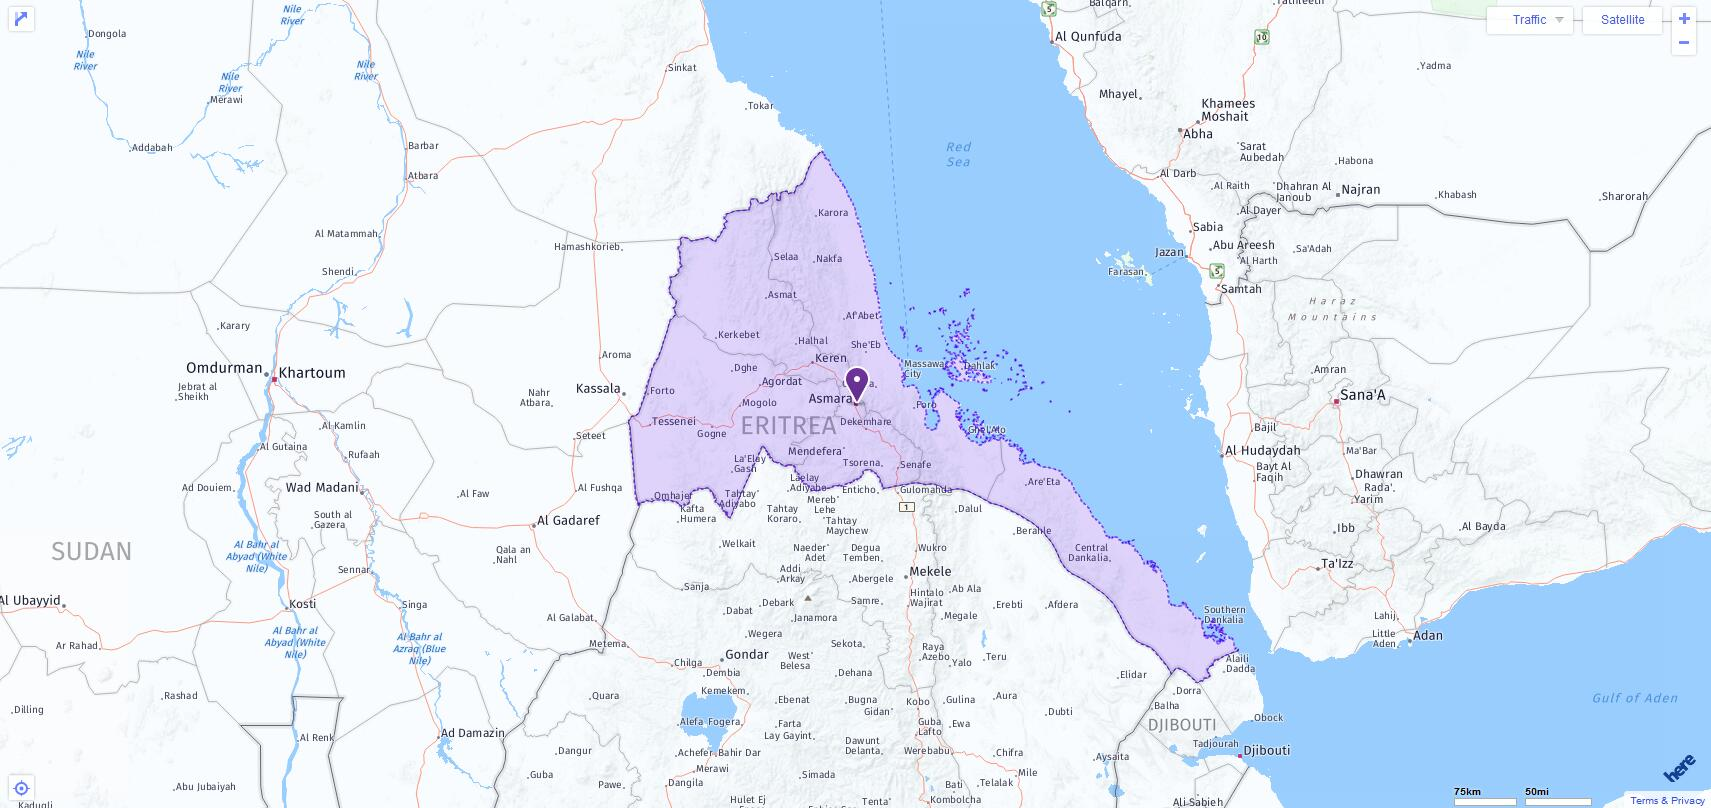 ACT Test Centers and Dates in Eritrea